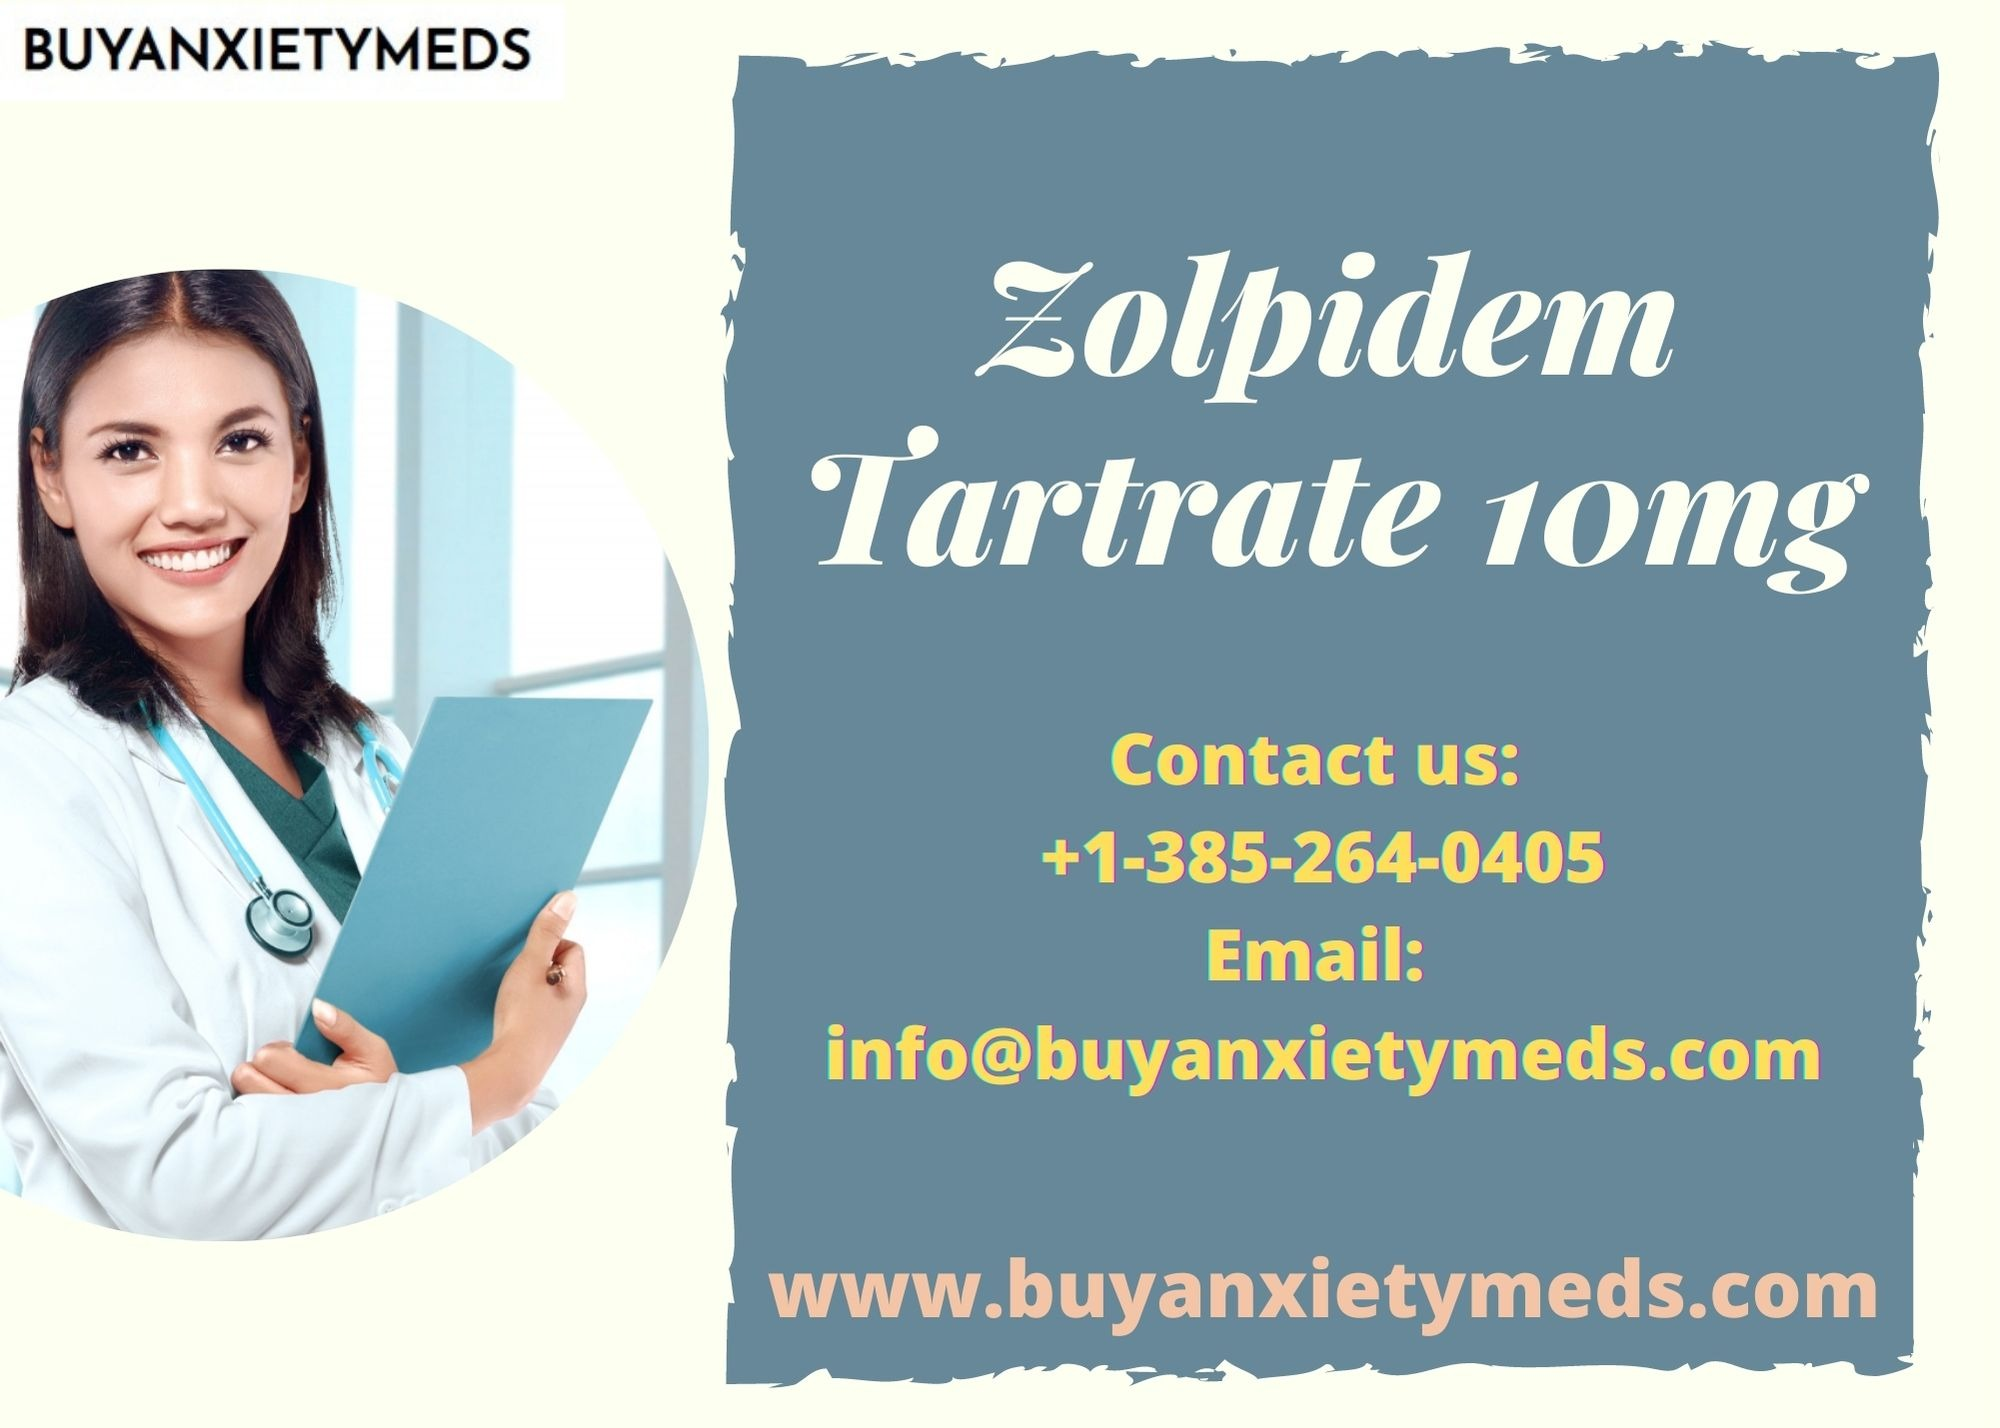 Zolpidem Tartrate 10mg || Buy Anxeity Meds Online